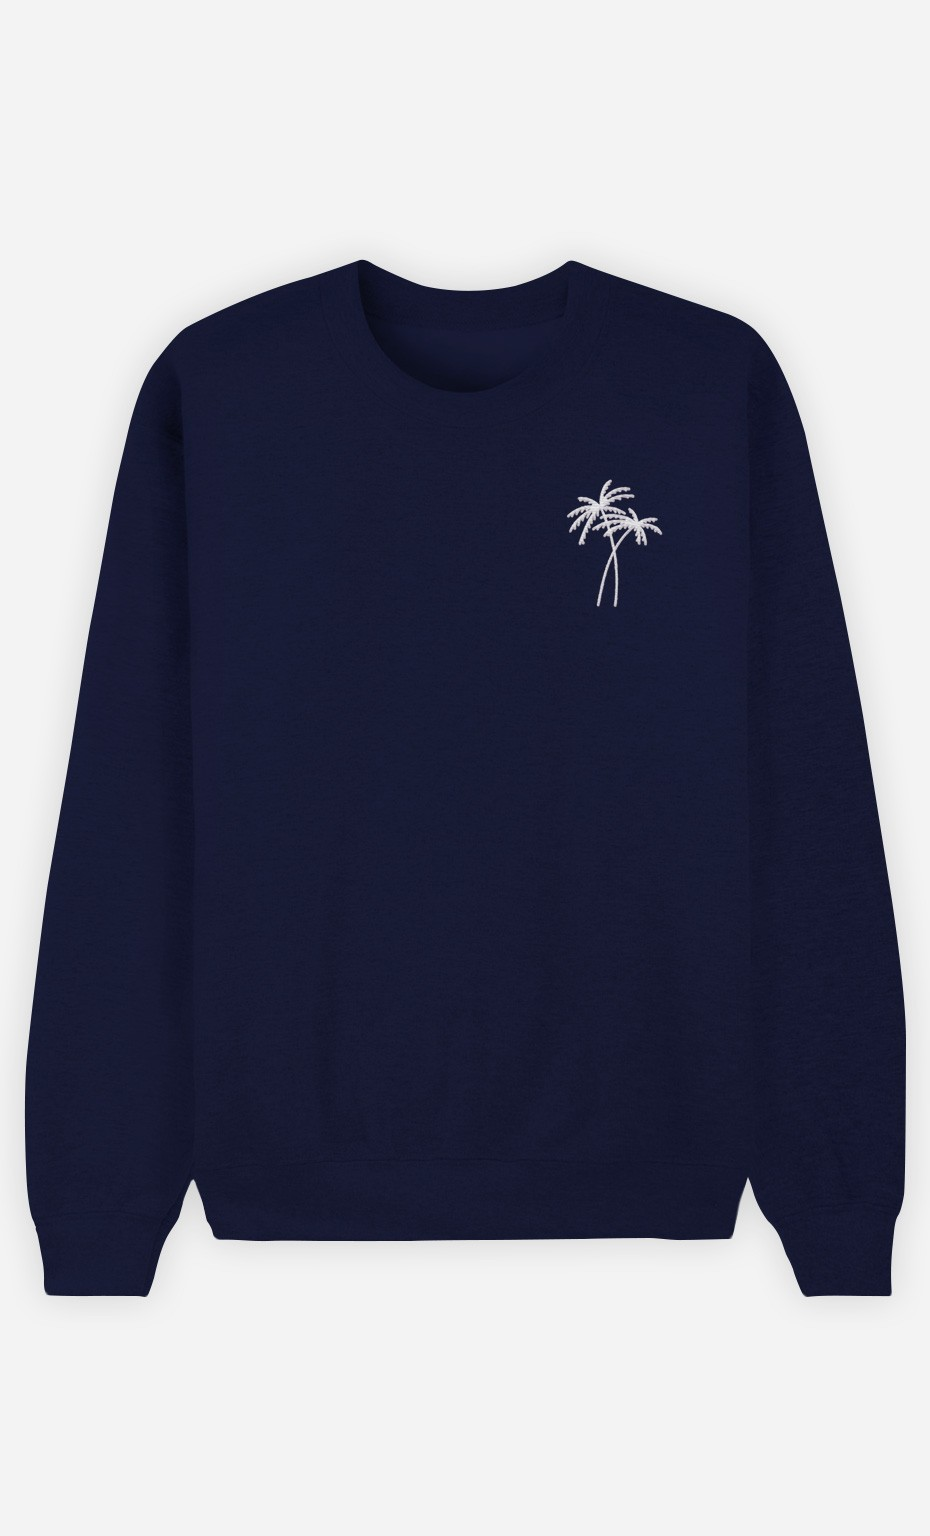 Sweat Navy Palmier - brodé